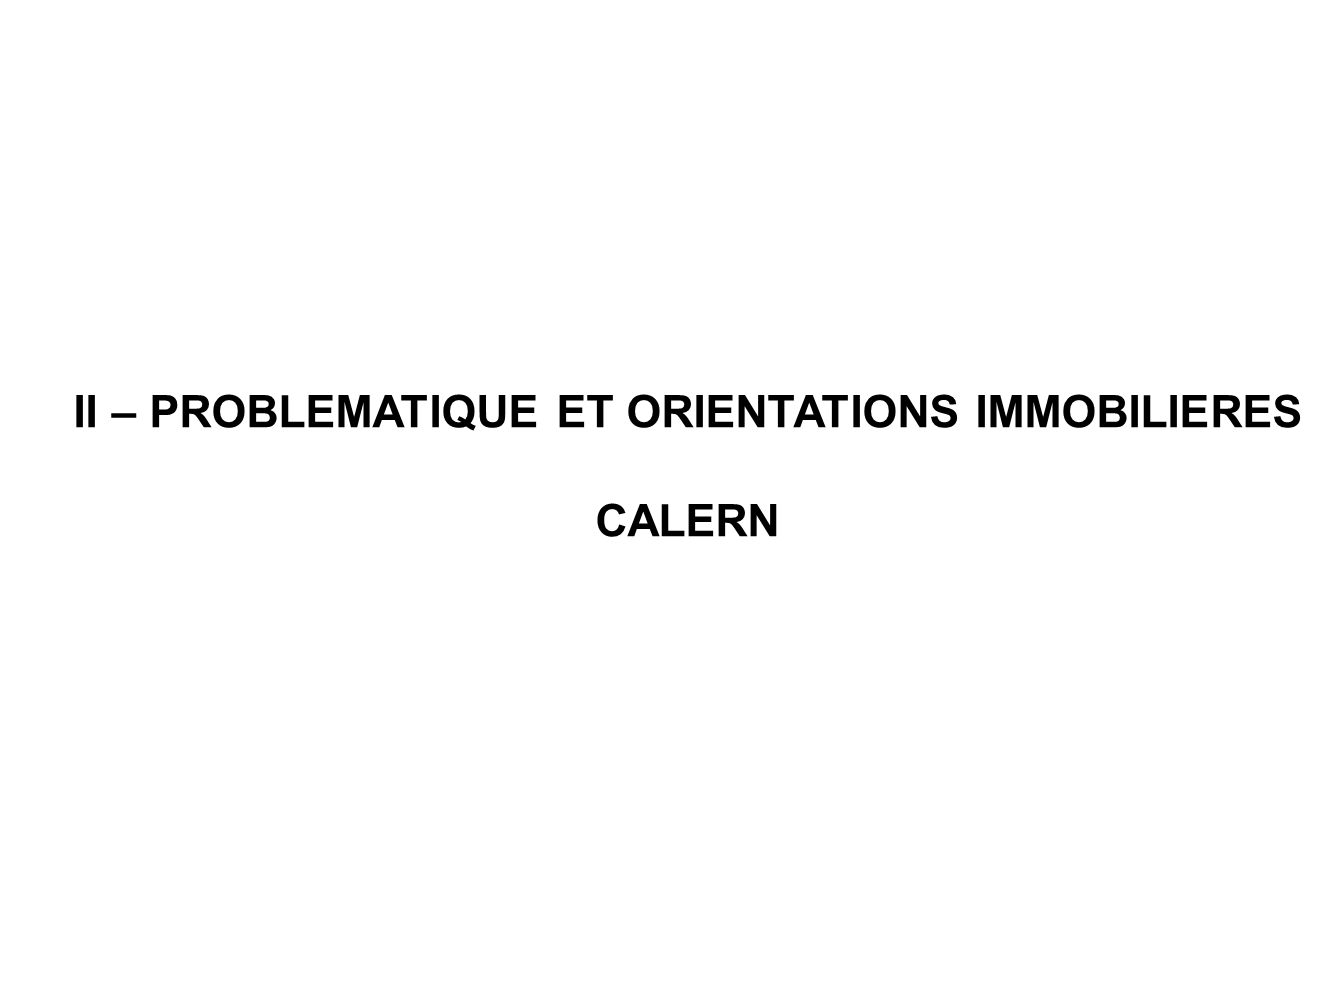 II – PROBLEMATIQUE ET ORIENTATIONS IMMOBILIERES CALERN